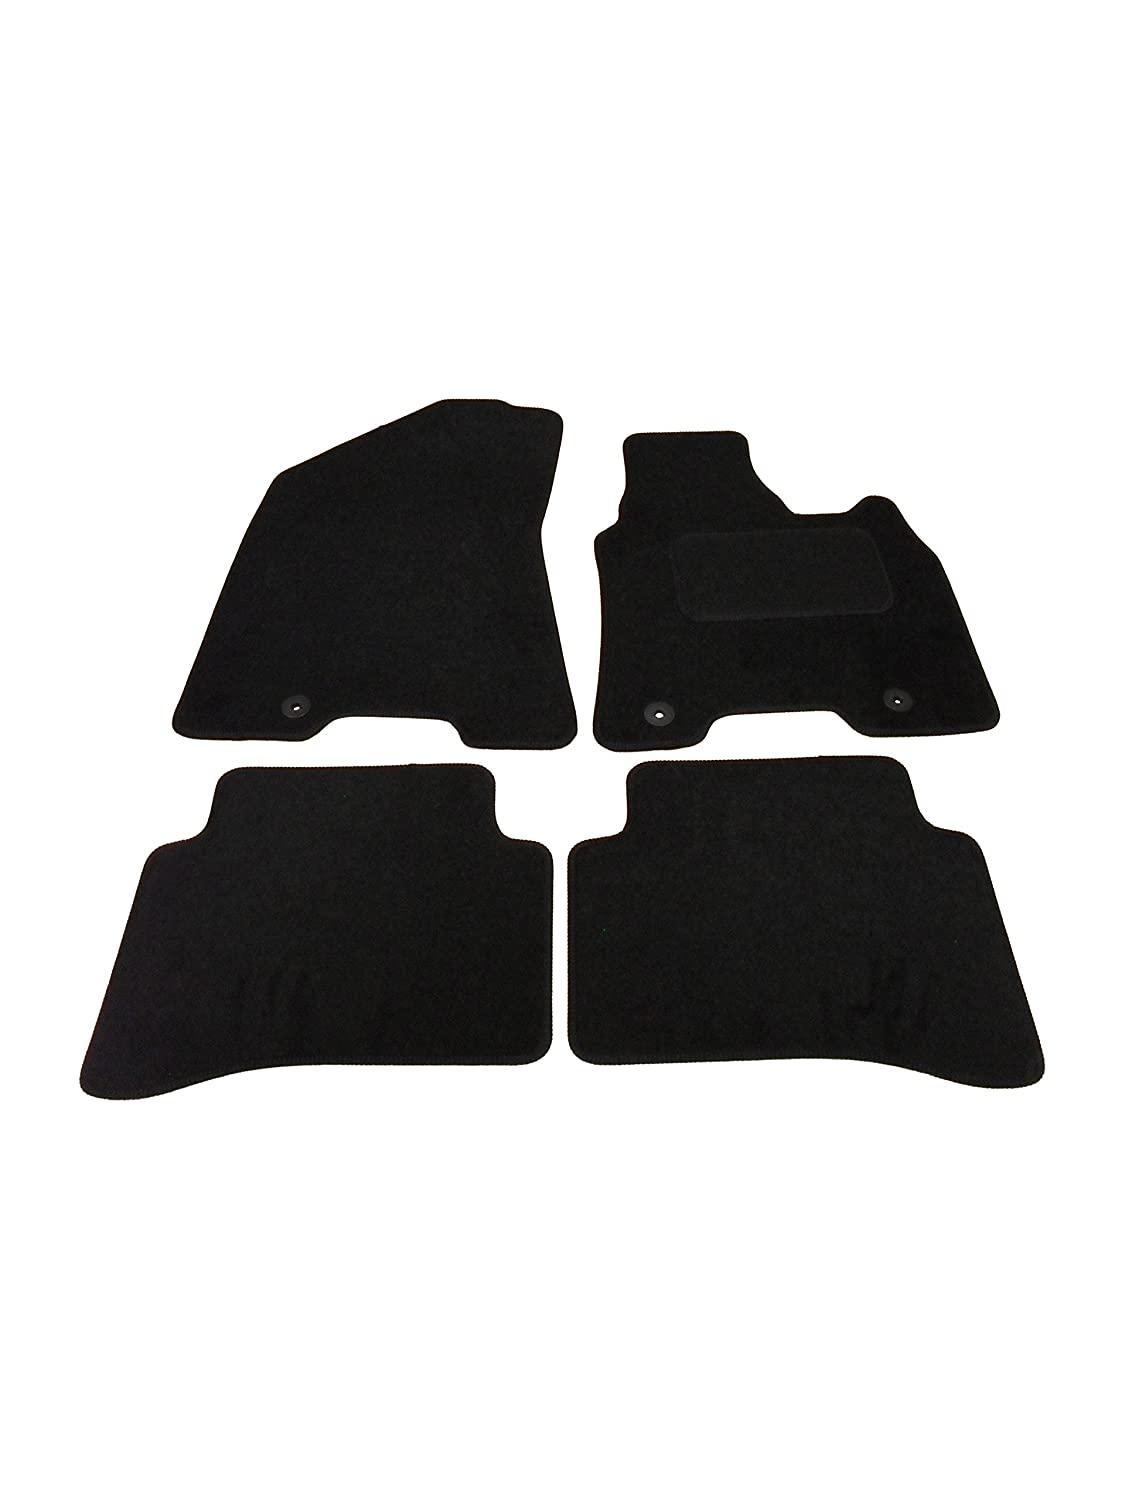 Fully Tailored Deluxe Car Mats in Black click